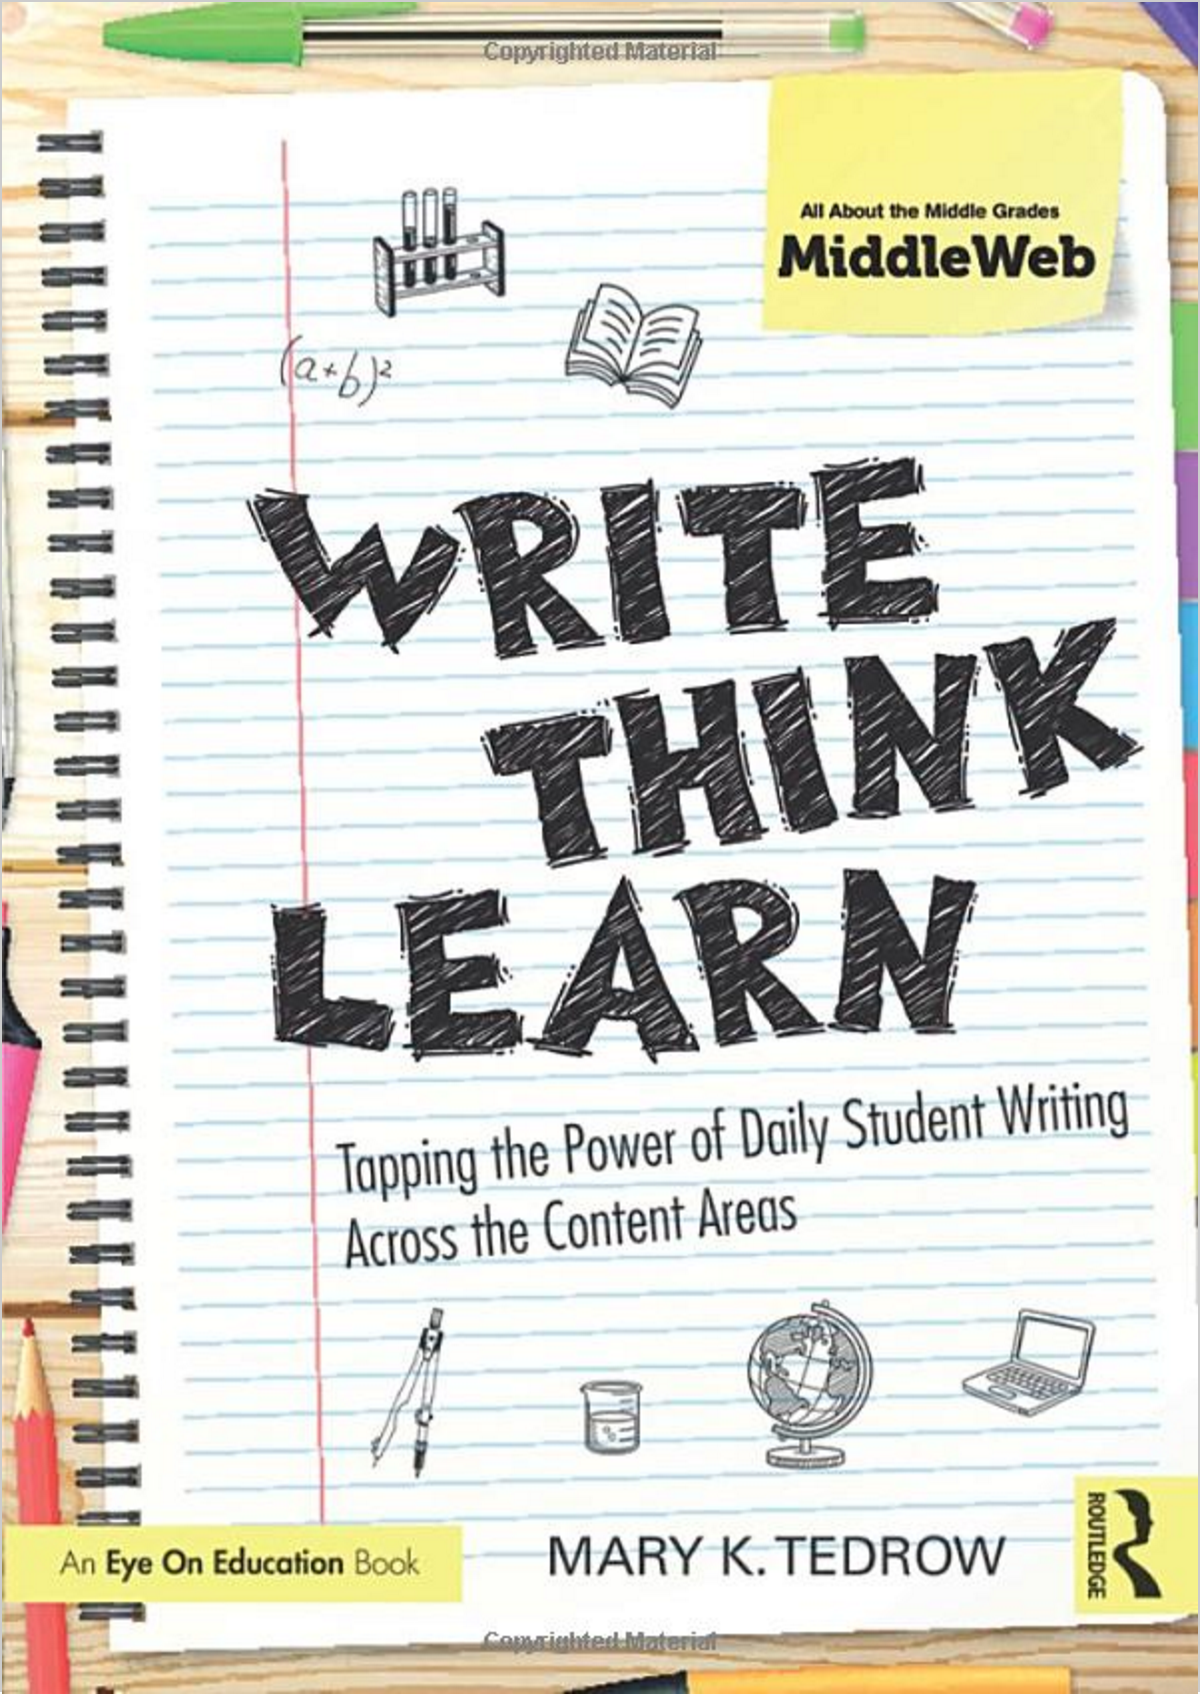 Write, Think, Learn - Find out how to create the climate and space for everyday student writing. In this new co-publication with MiddleWeb, award-winning teacher Mary Tedrow shows you how to encourage students to integrate daily writing into their lives, leading to improved critical thinking skills, increased knowledge of subject areas, and greater confidence in written expression. This practical guide will help you consider the unique needs of your students, while still meeting state standards.